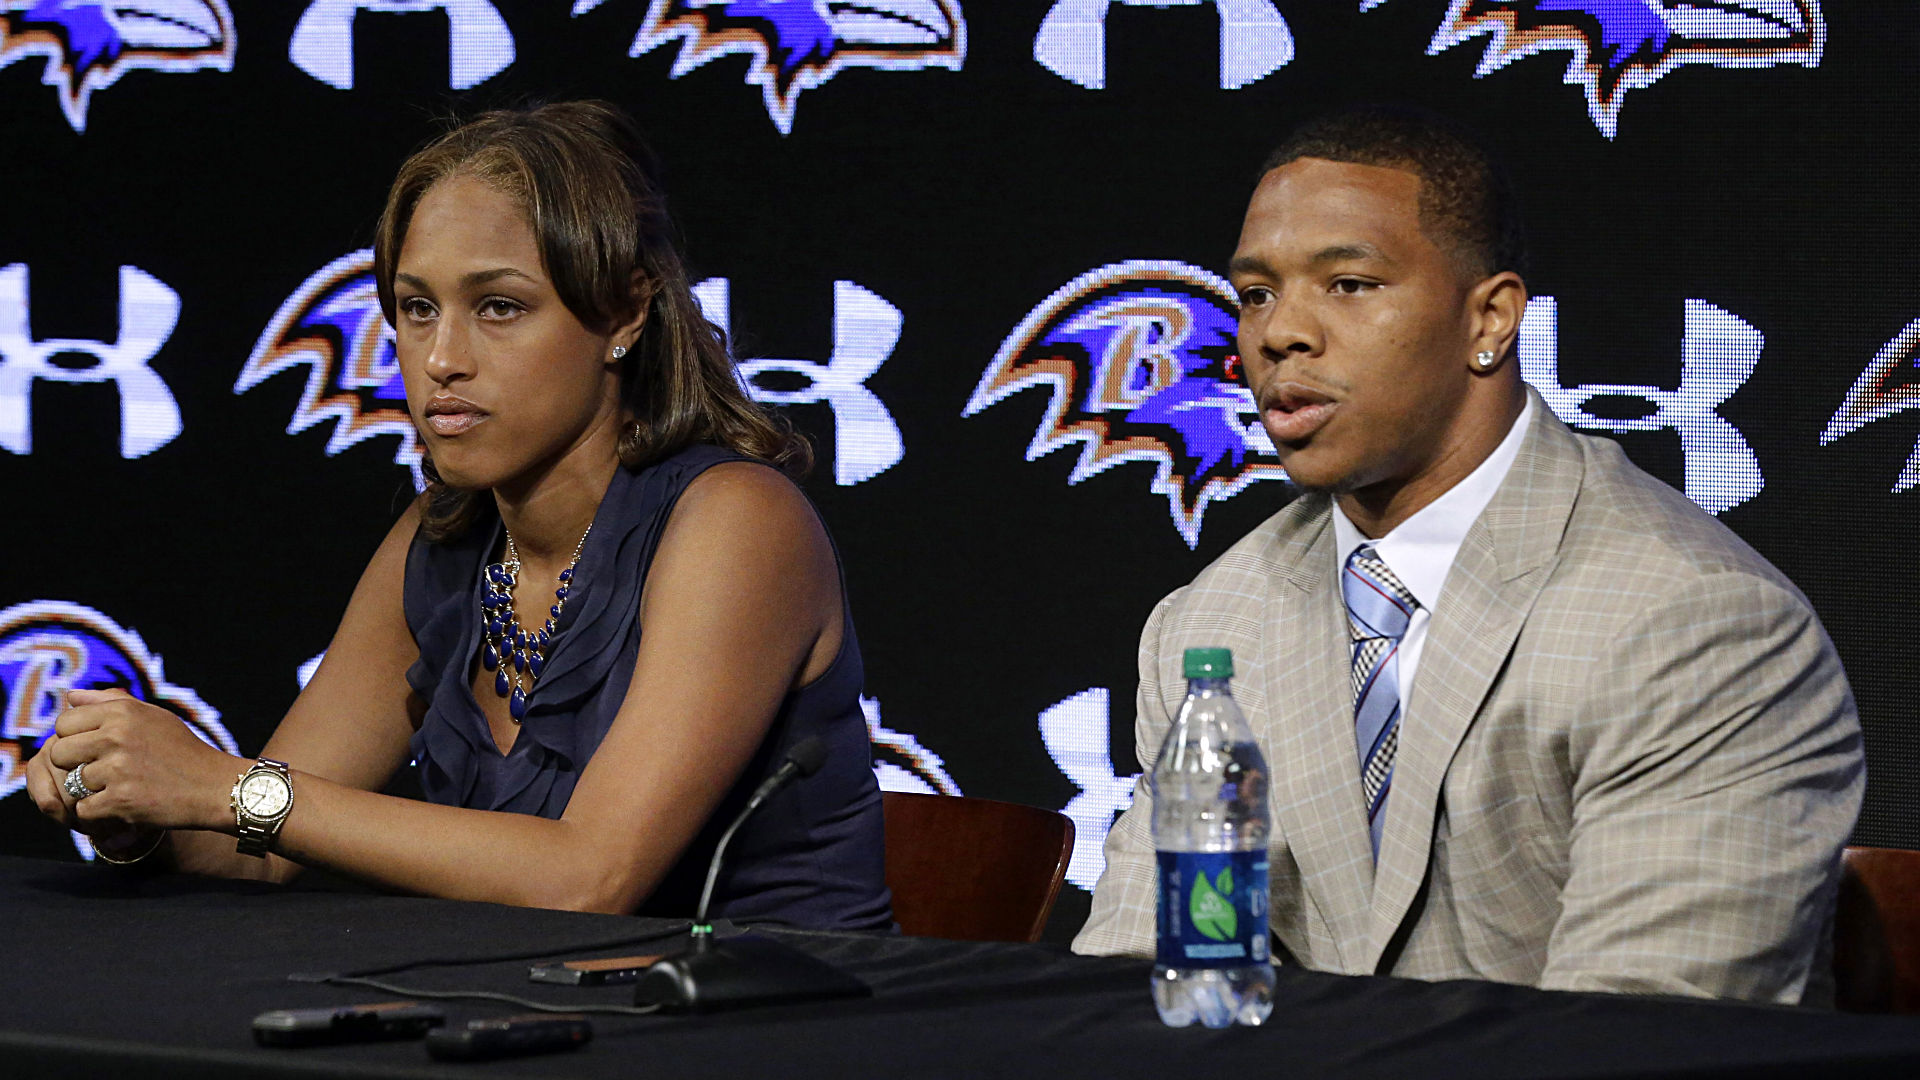 ray-rice-apology-ftr.jpg